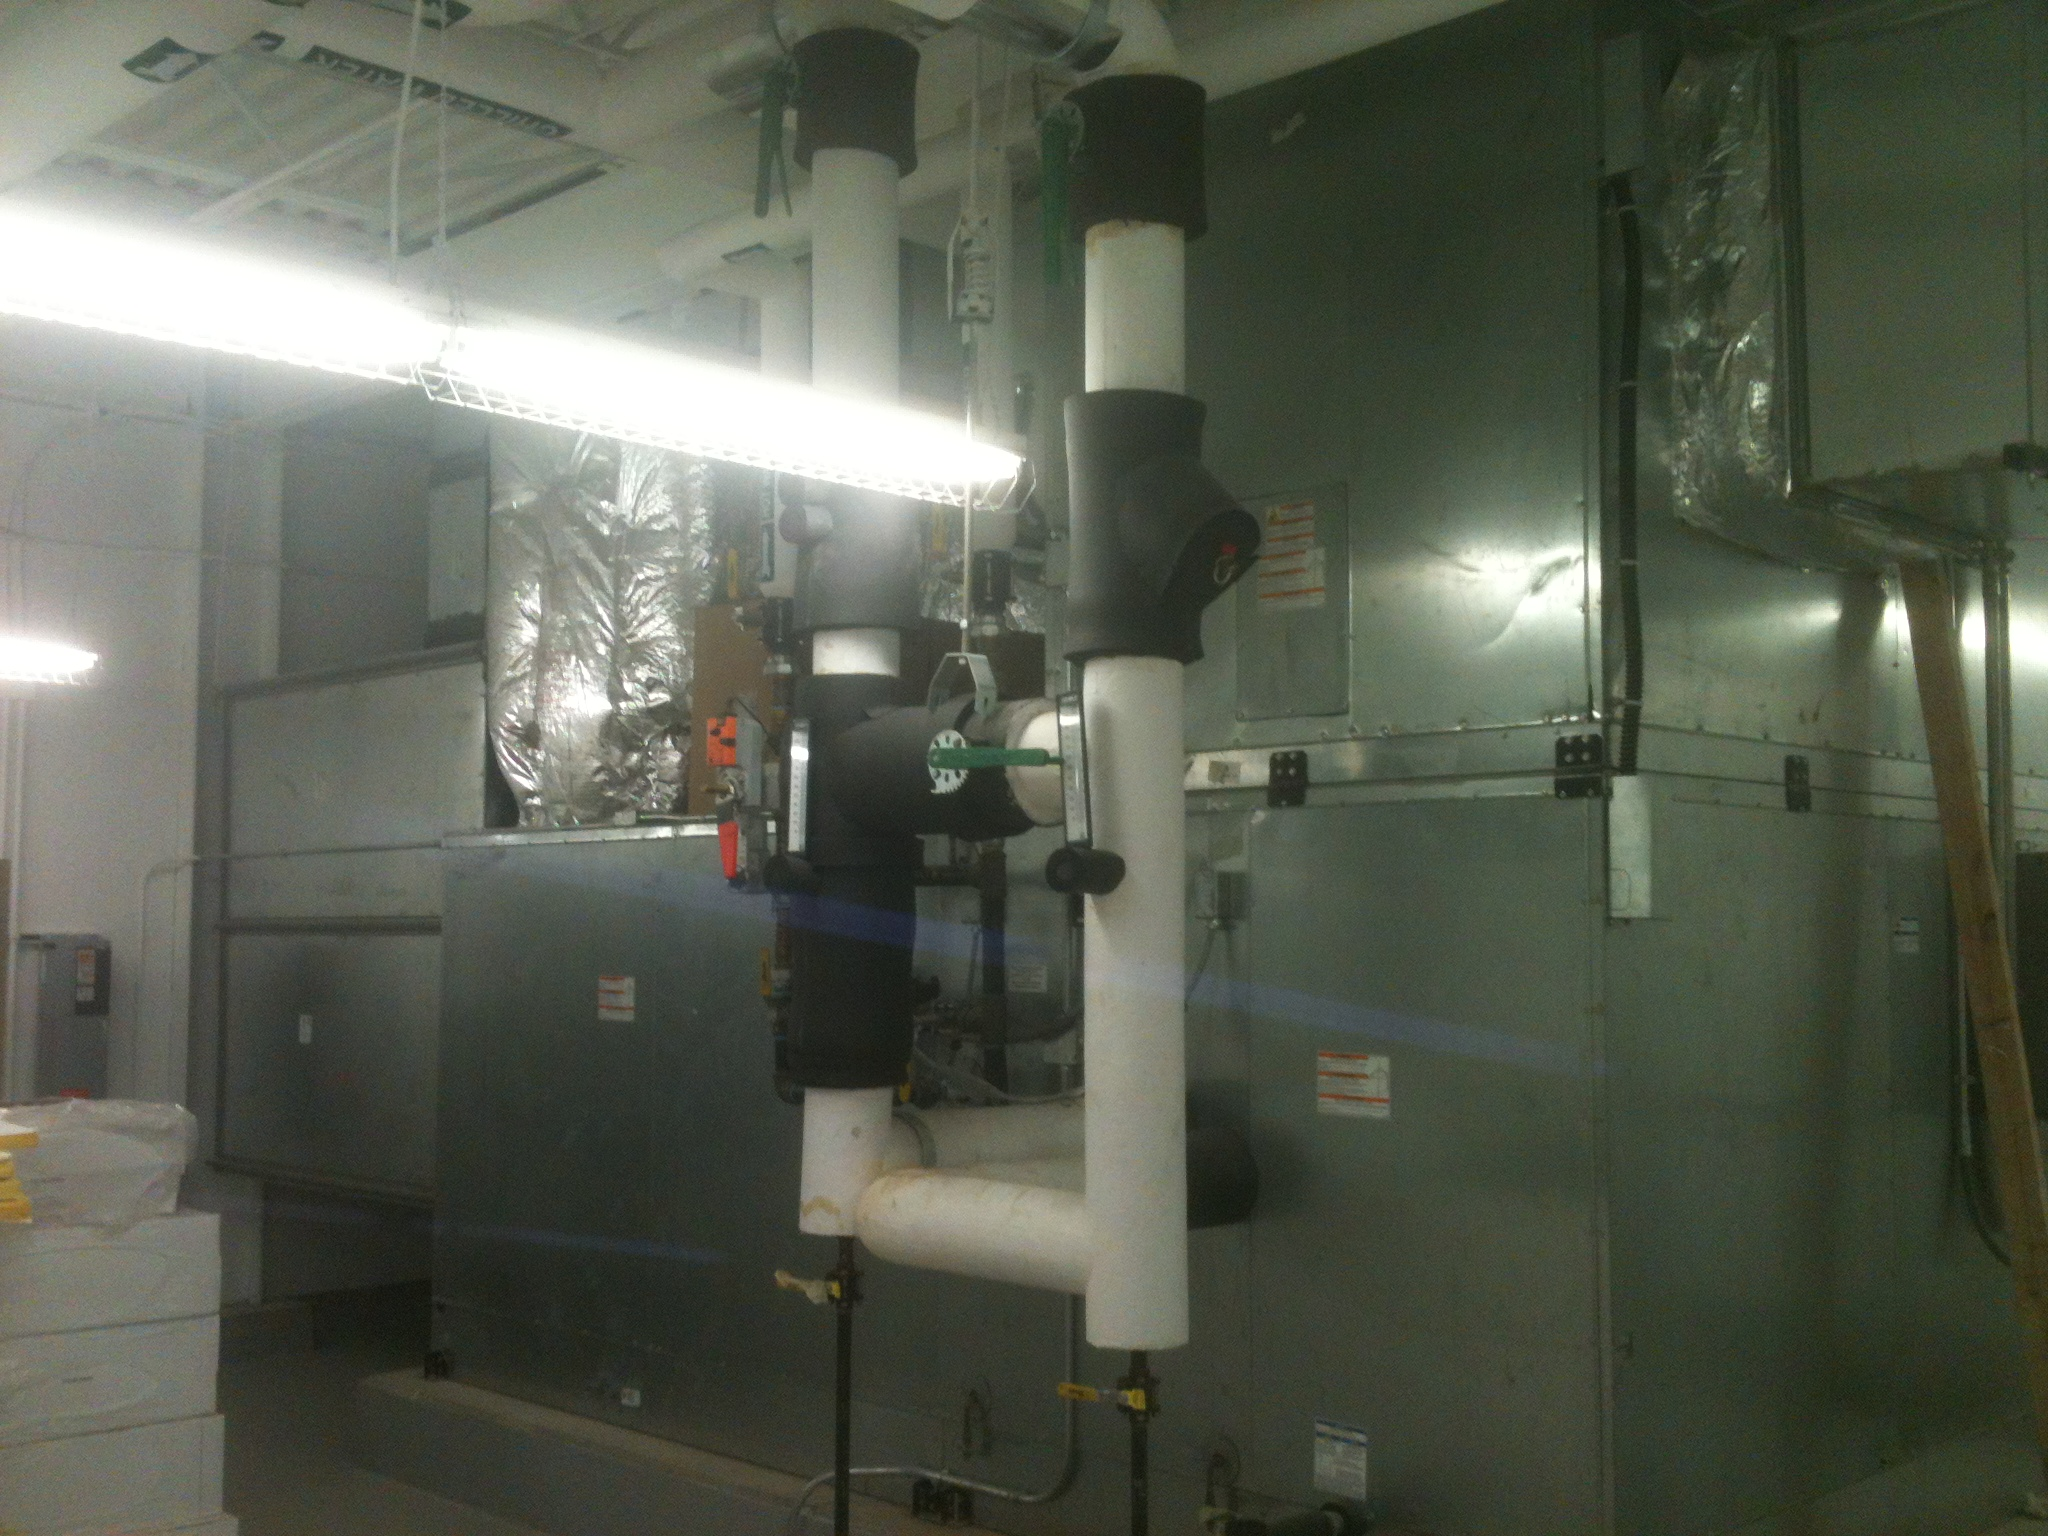 Air Handling Unit at Southwest Tennessee Community College Nursing Building